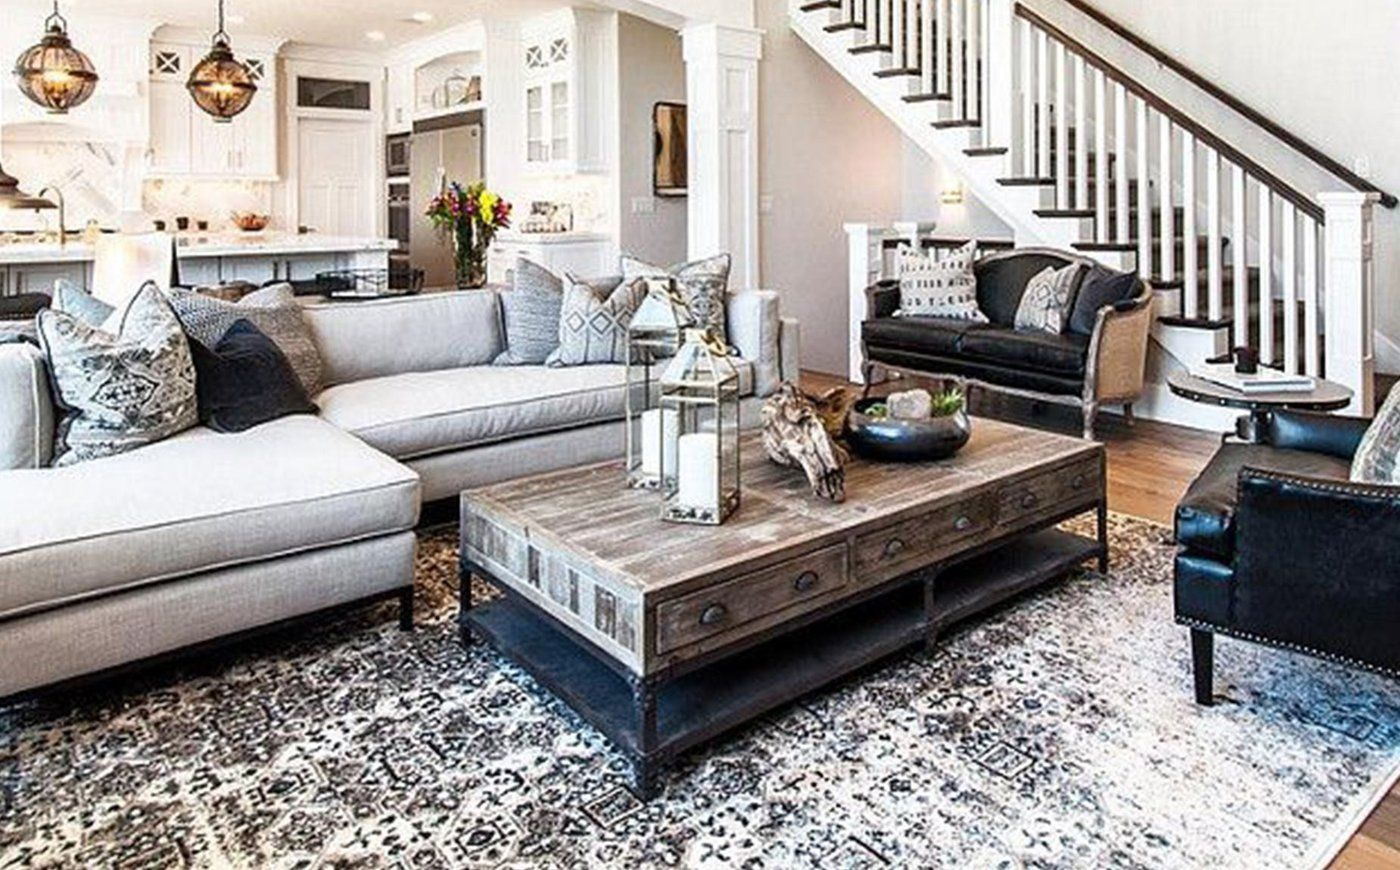 10 Amazing Standard Rug Size For Living Room